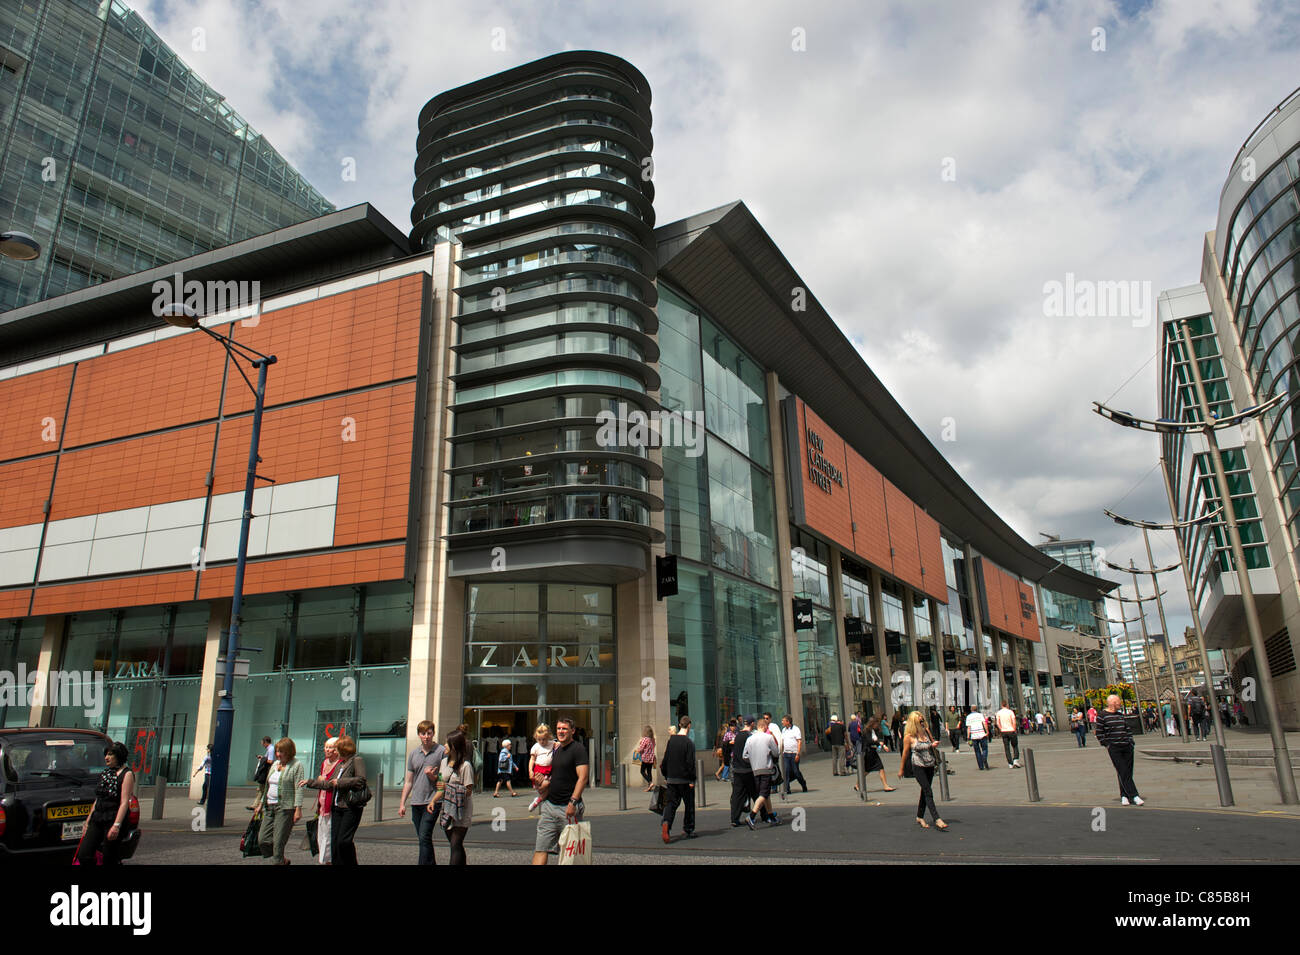 MANCHESTER'S NEW CATHEDRAL STREET SHOPS - Stock Image